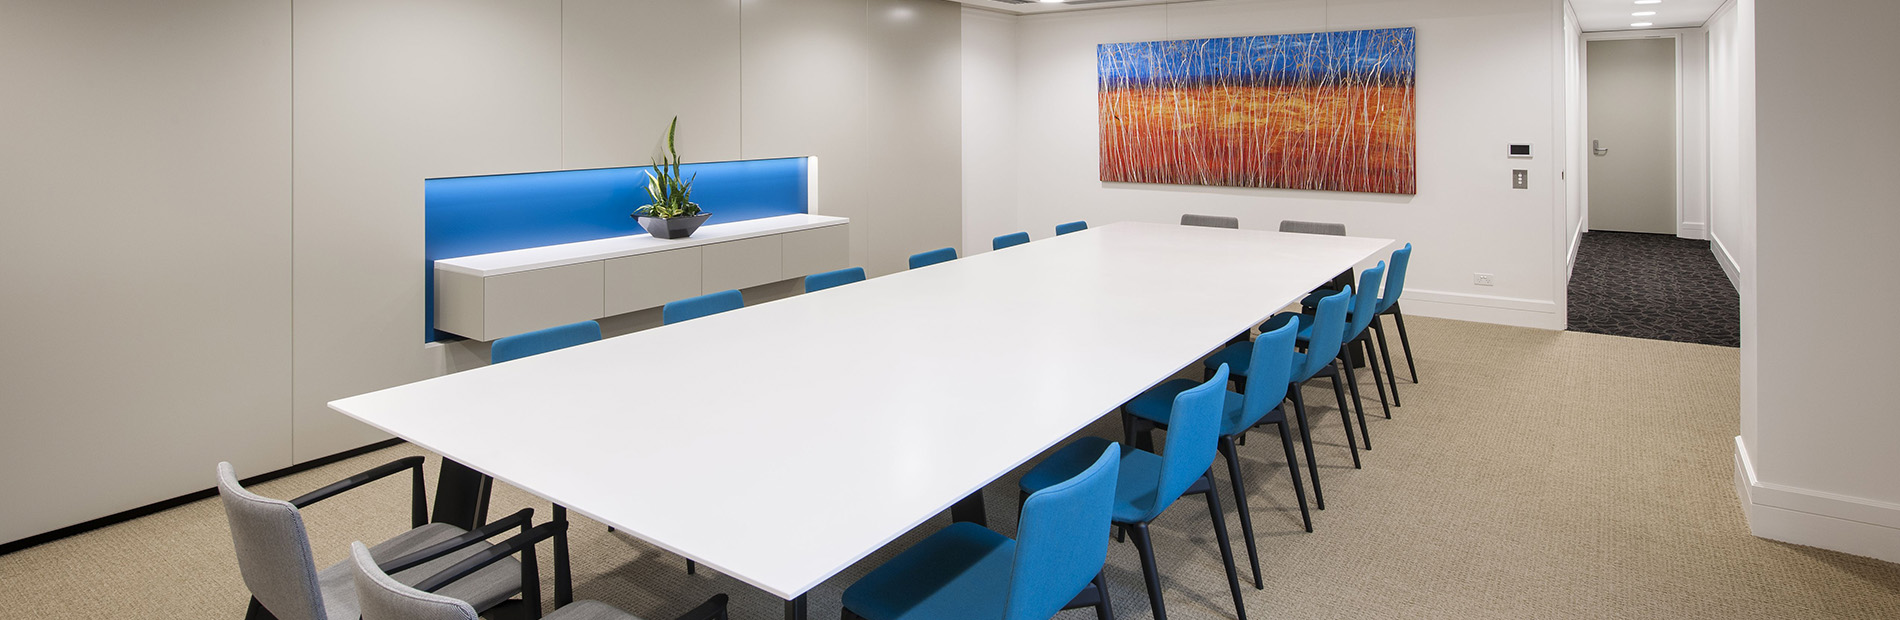 Corporate Boardroom Desihgned by Hodgkison Architects